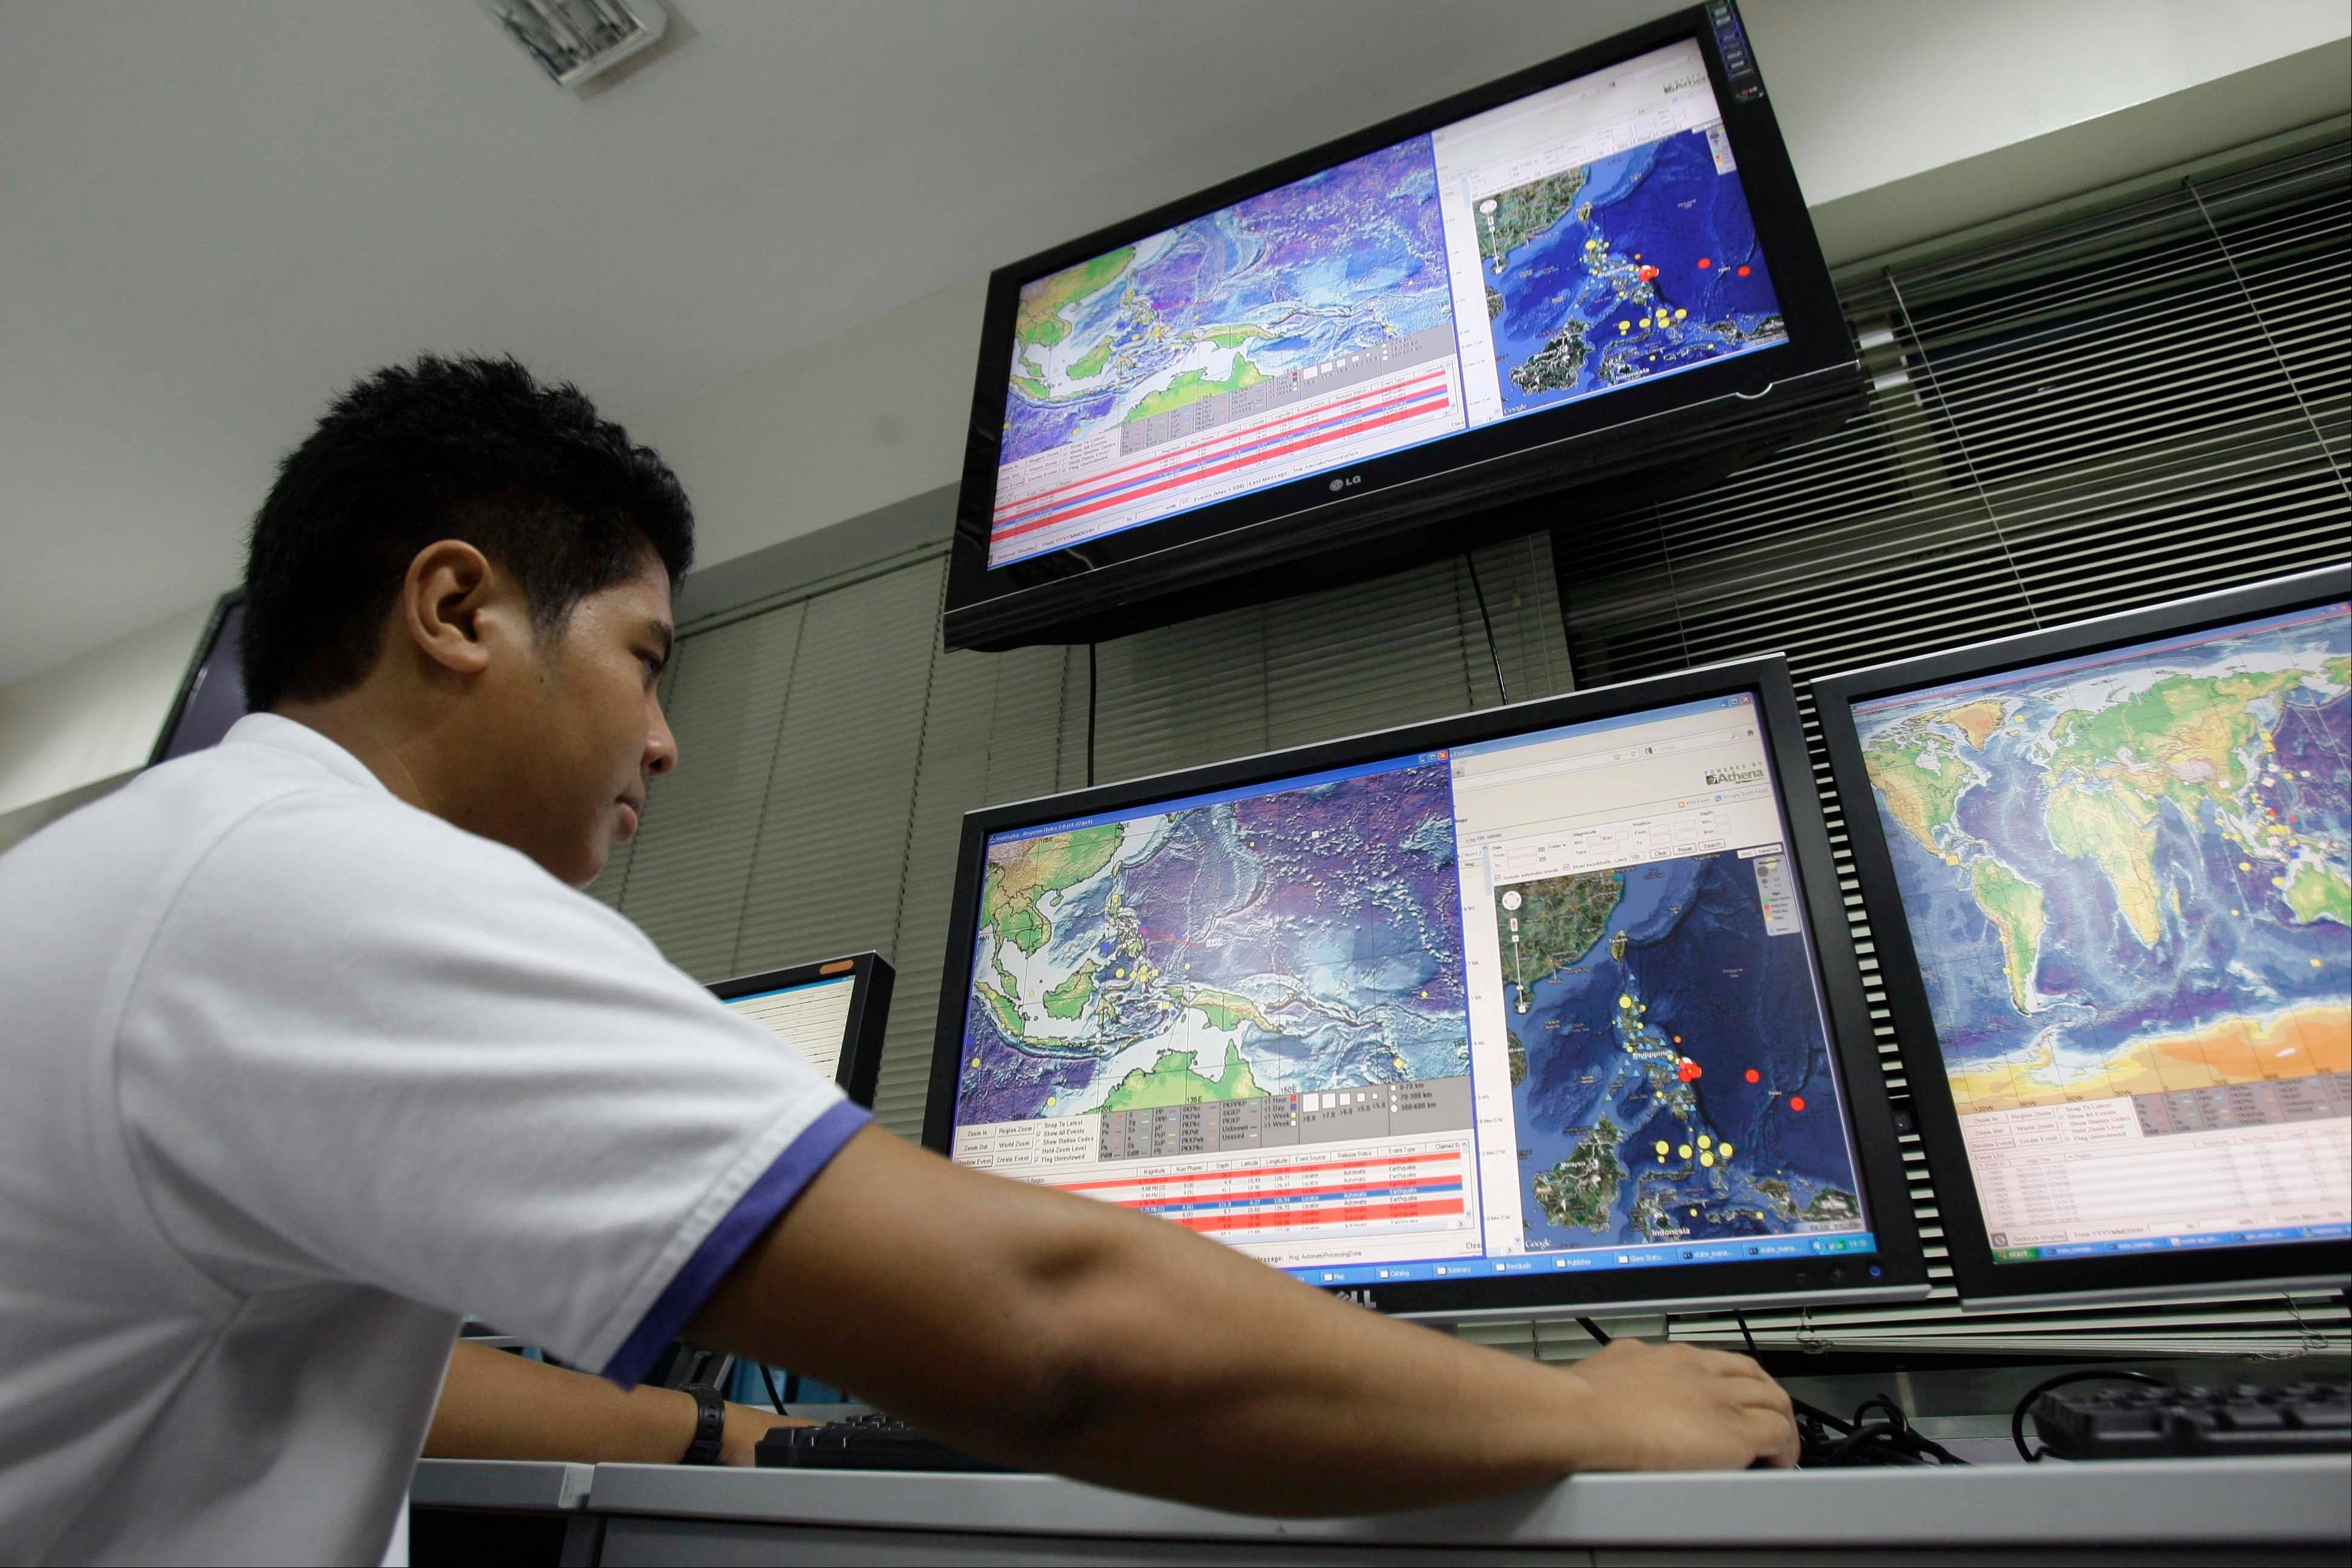 Filipino Engineer Ponzch Colleen Alcones watches the Automatic Earthquake Plotter as they continue to monitor actitivies at the Philippine Institute of Volcanology and Seismology in suburban Quezon City, north of Manila, Philippines on Friday Aug. 31, 2012. A 7.6-magnitude quake struck off the eastern coast of the Philippines late Friday, killing at least one person in a house collapse and setting off small tsunami waves about 0.1-foot-high. Most coastal residents fled to high ground and power was knocked out in several cities.